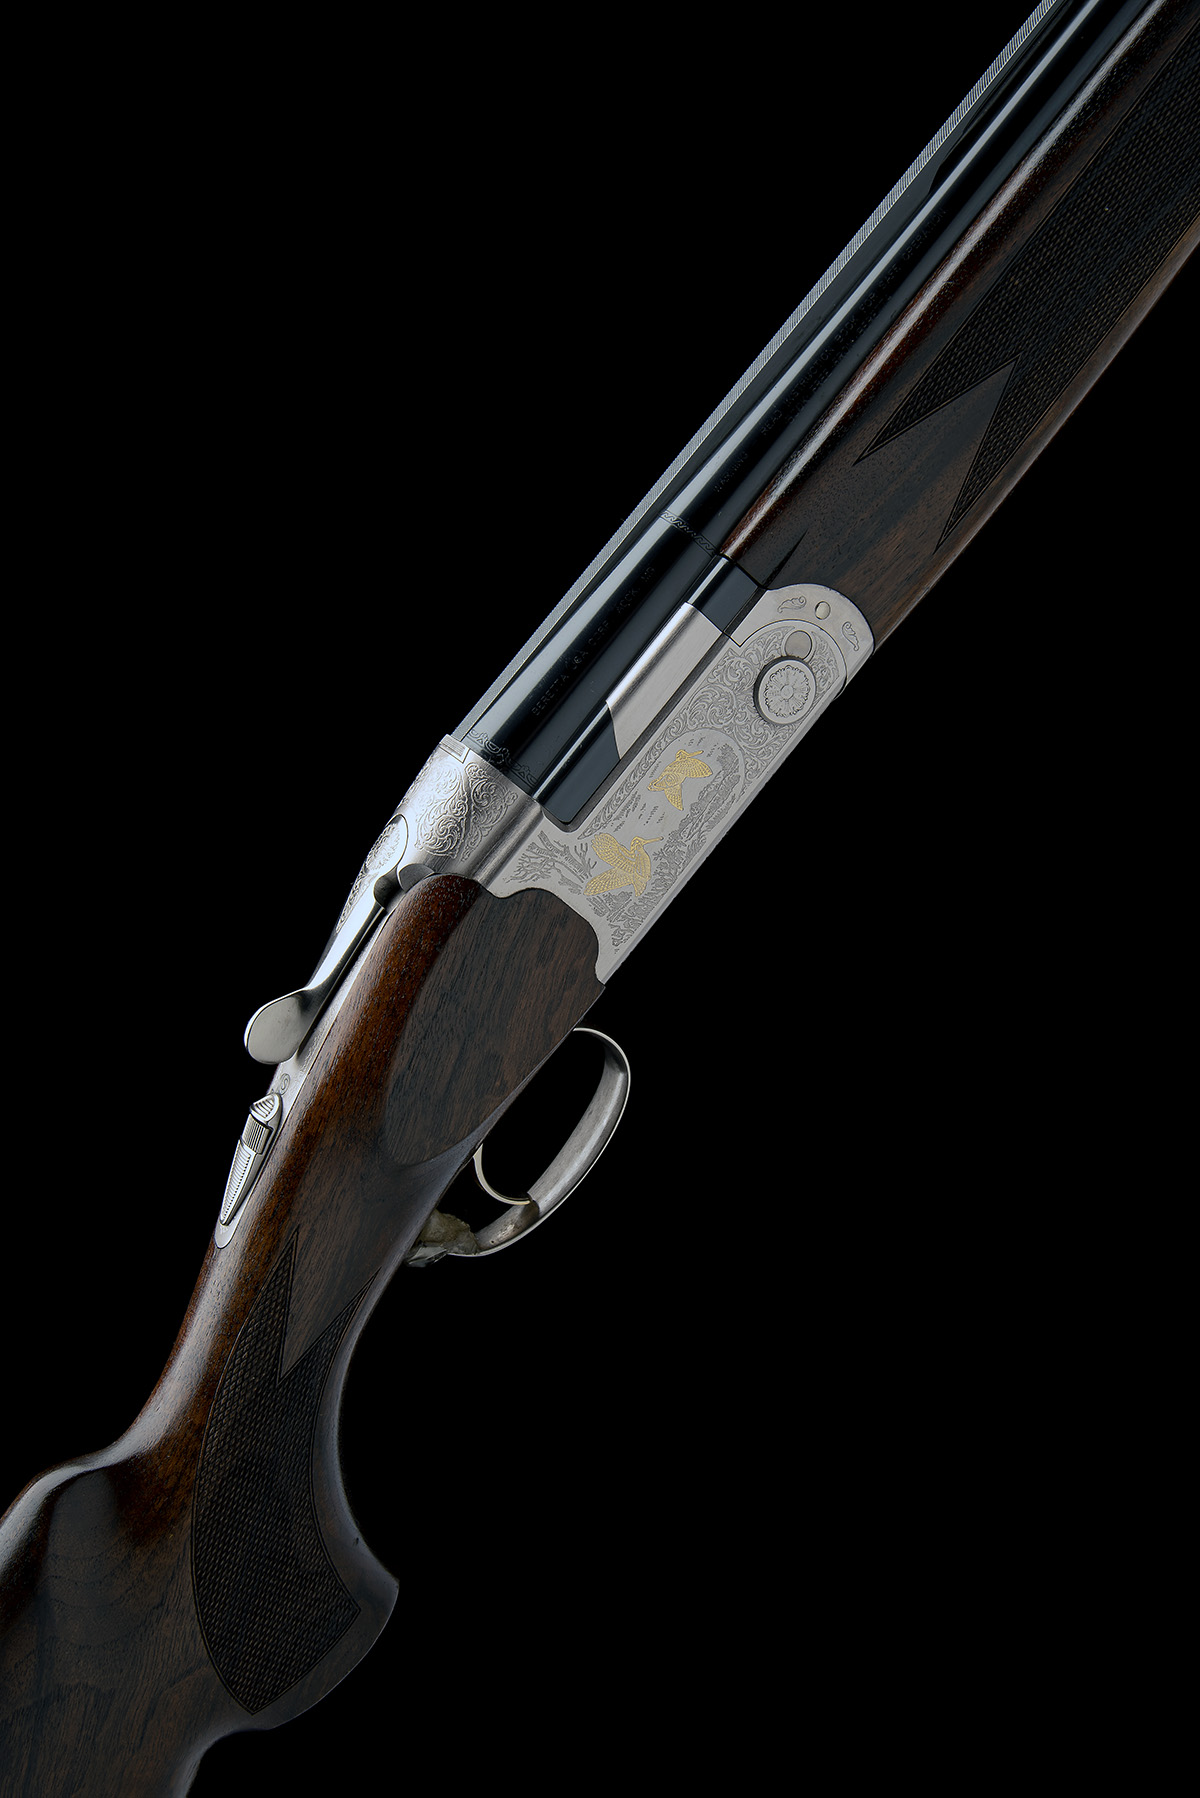 P. BERETTA A 12-BORE 'ULTRA LIGHT DELUXE' SINGLE-TRIGGER OVER AND UNDER EJECTOR, serial no. R00281S,